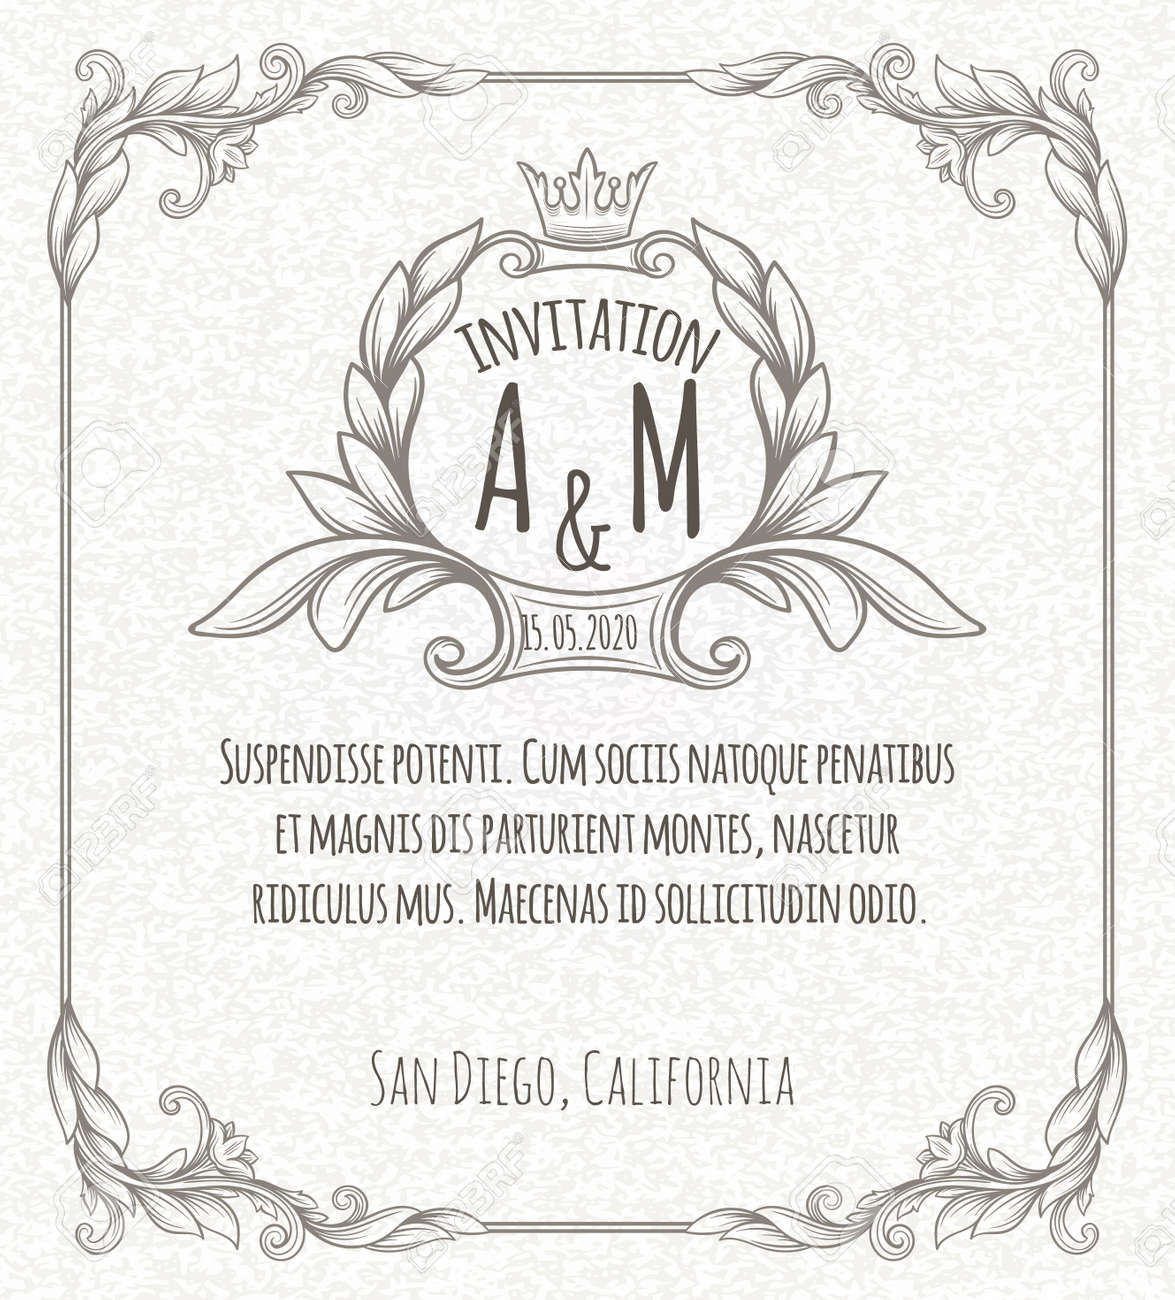 31201028 page decoration template vintage frame Stock Vector border free html website templates with login page,html free download on login screen template html